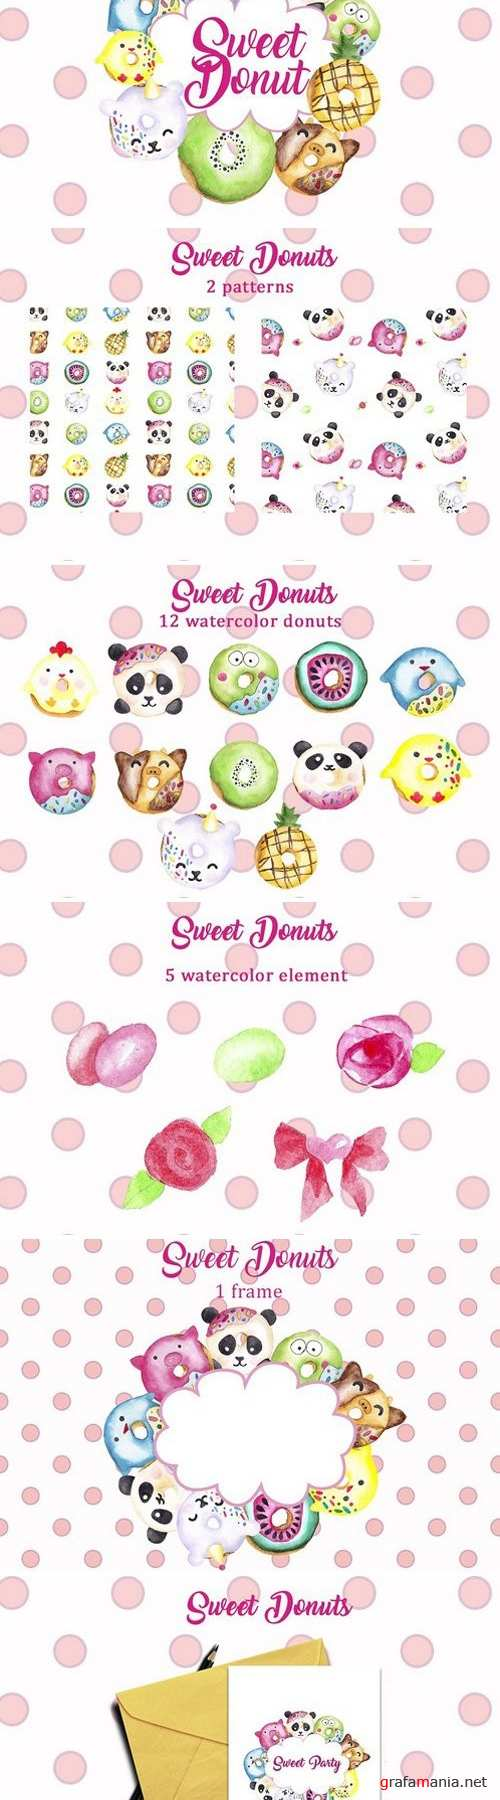 Sweet donuts 2458925